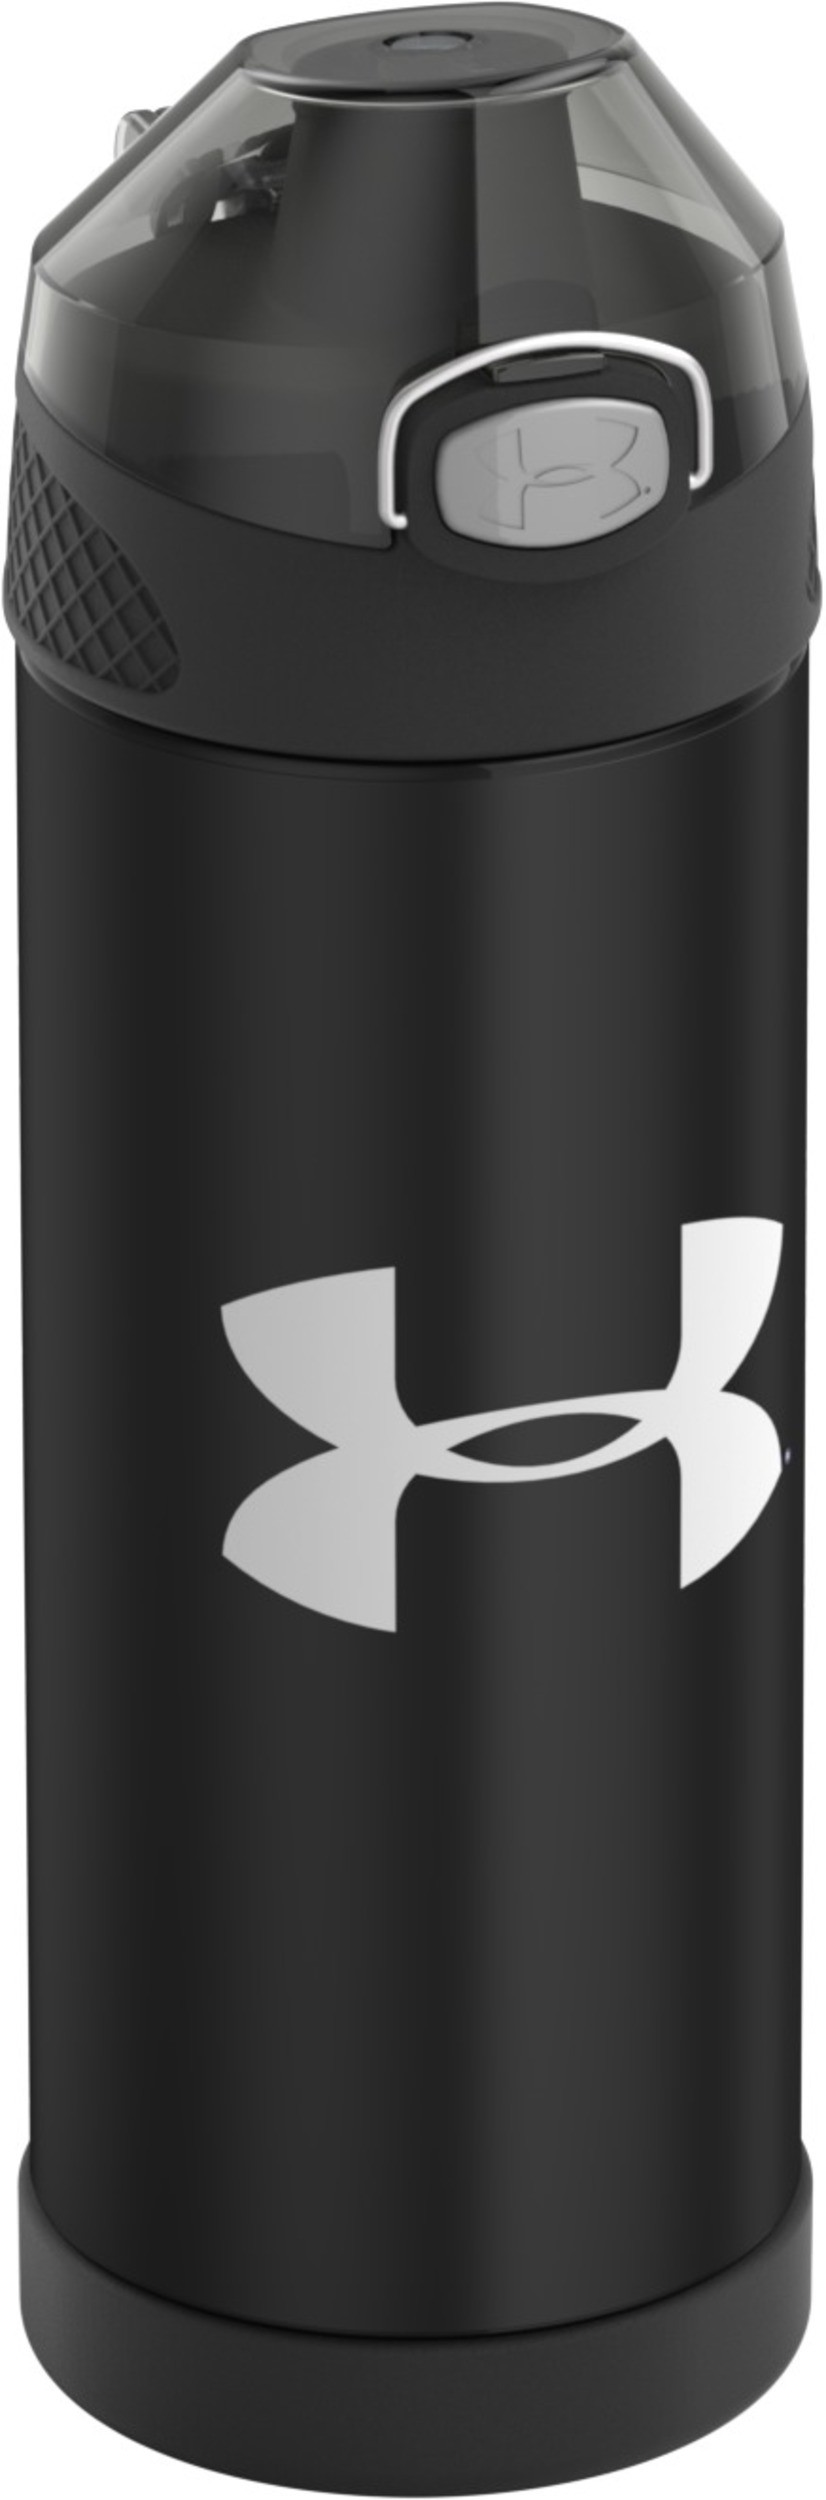 UA PROTEGE 16OZ STAINLESS STEEL WATER BOTTLE